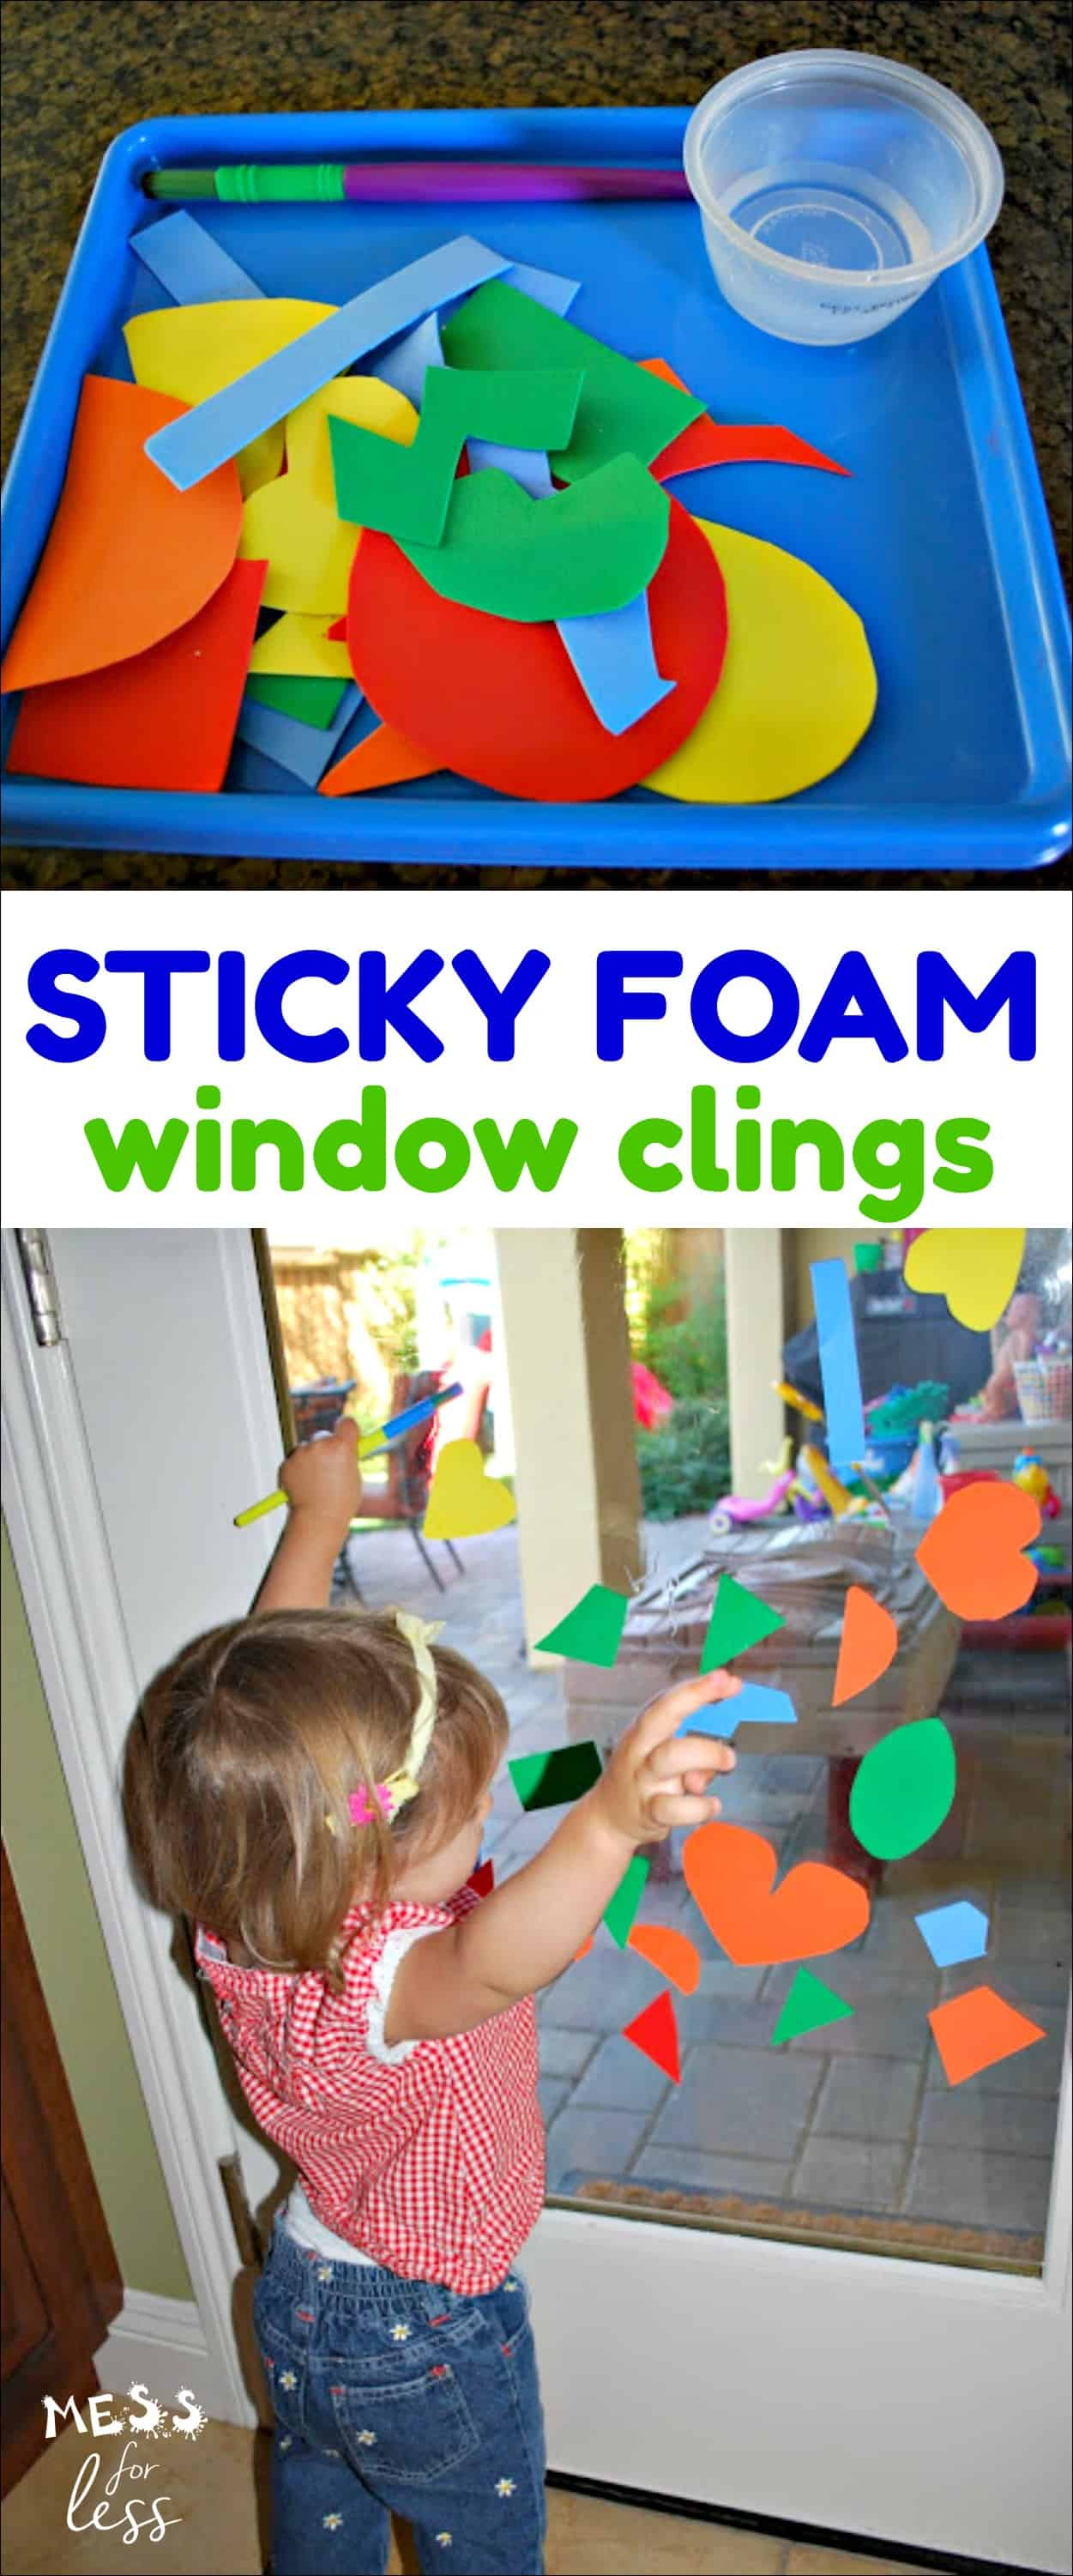 You can make these foam window clings yourself and them give to kids along with a paint brush and water. They will be fascinated with them!